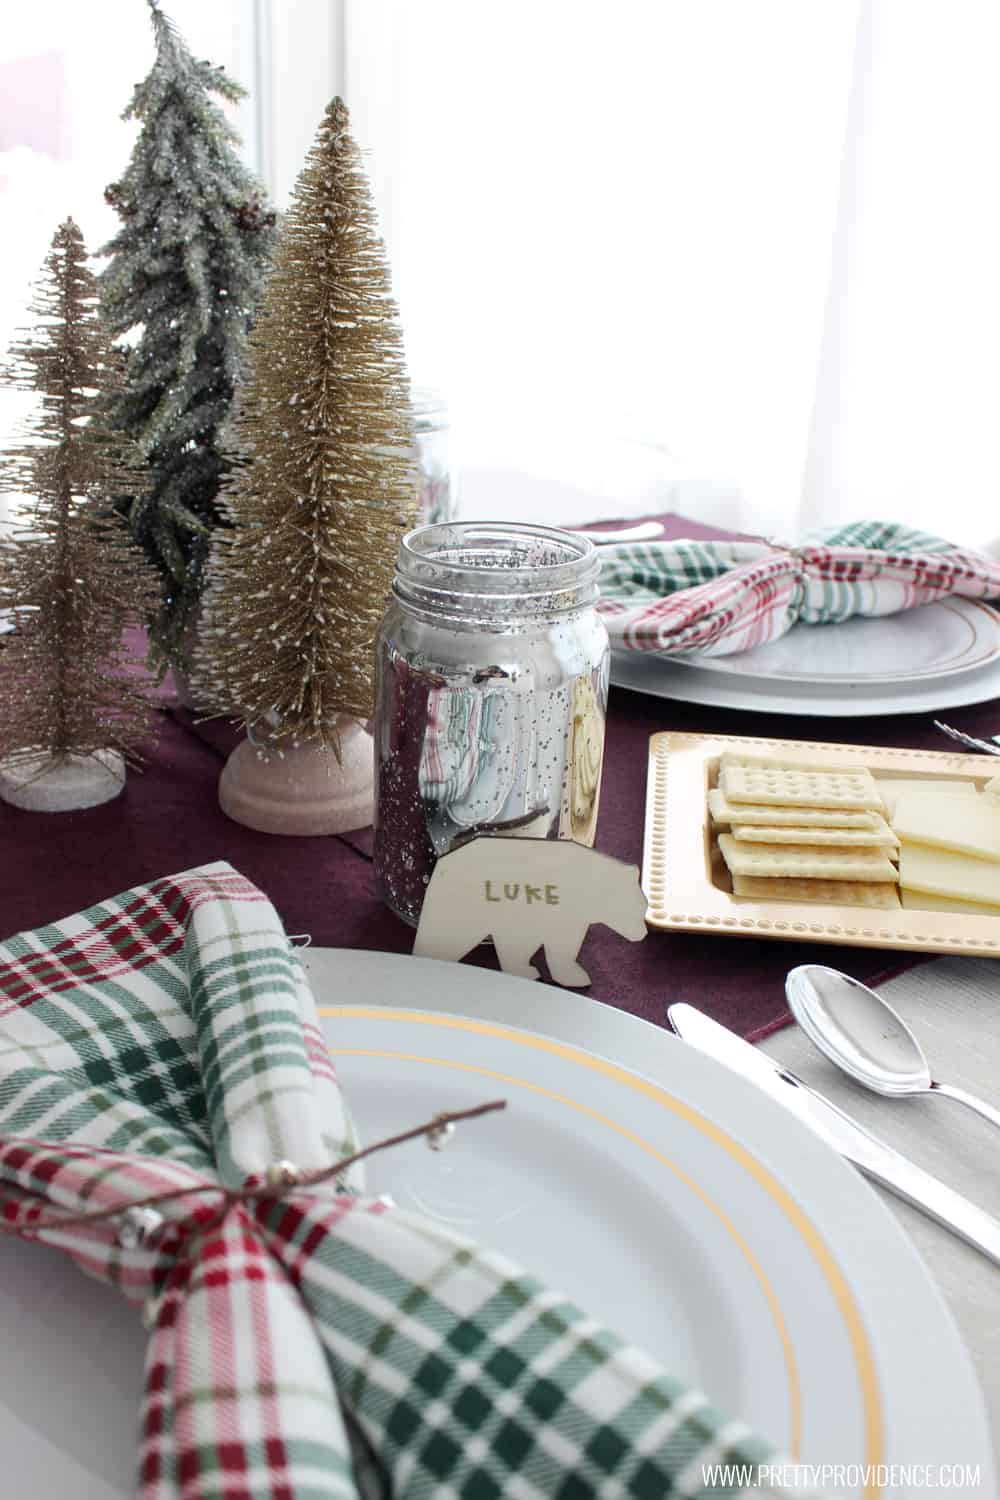 Loving this simple holiday tablescape! Whimsically beautiful, with items I'll use again and again!